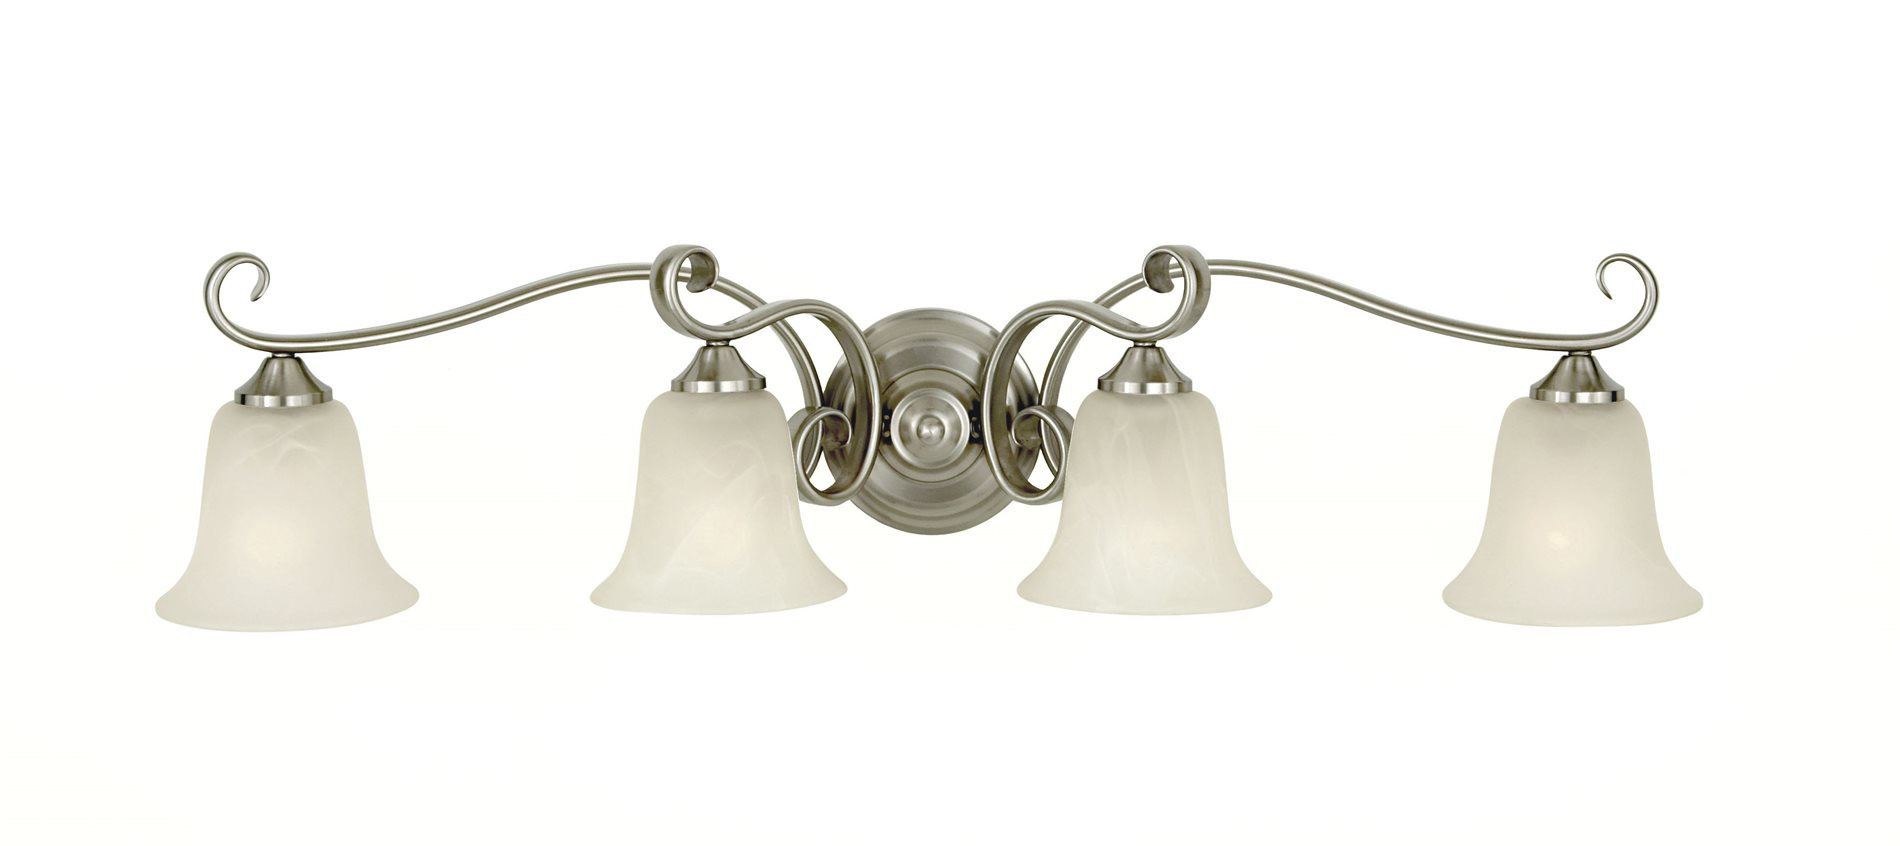 Murray Feiss Vs10404 Bs Vista Traditional Bathroom Vanity Light Mrf Vs10404 Bs